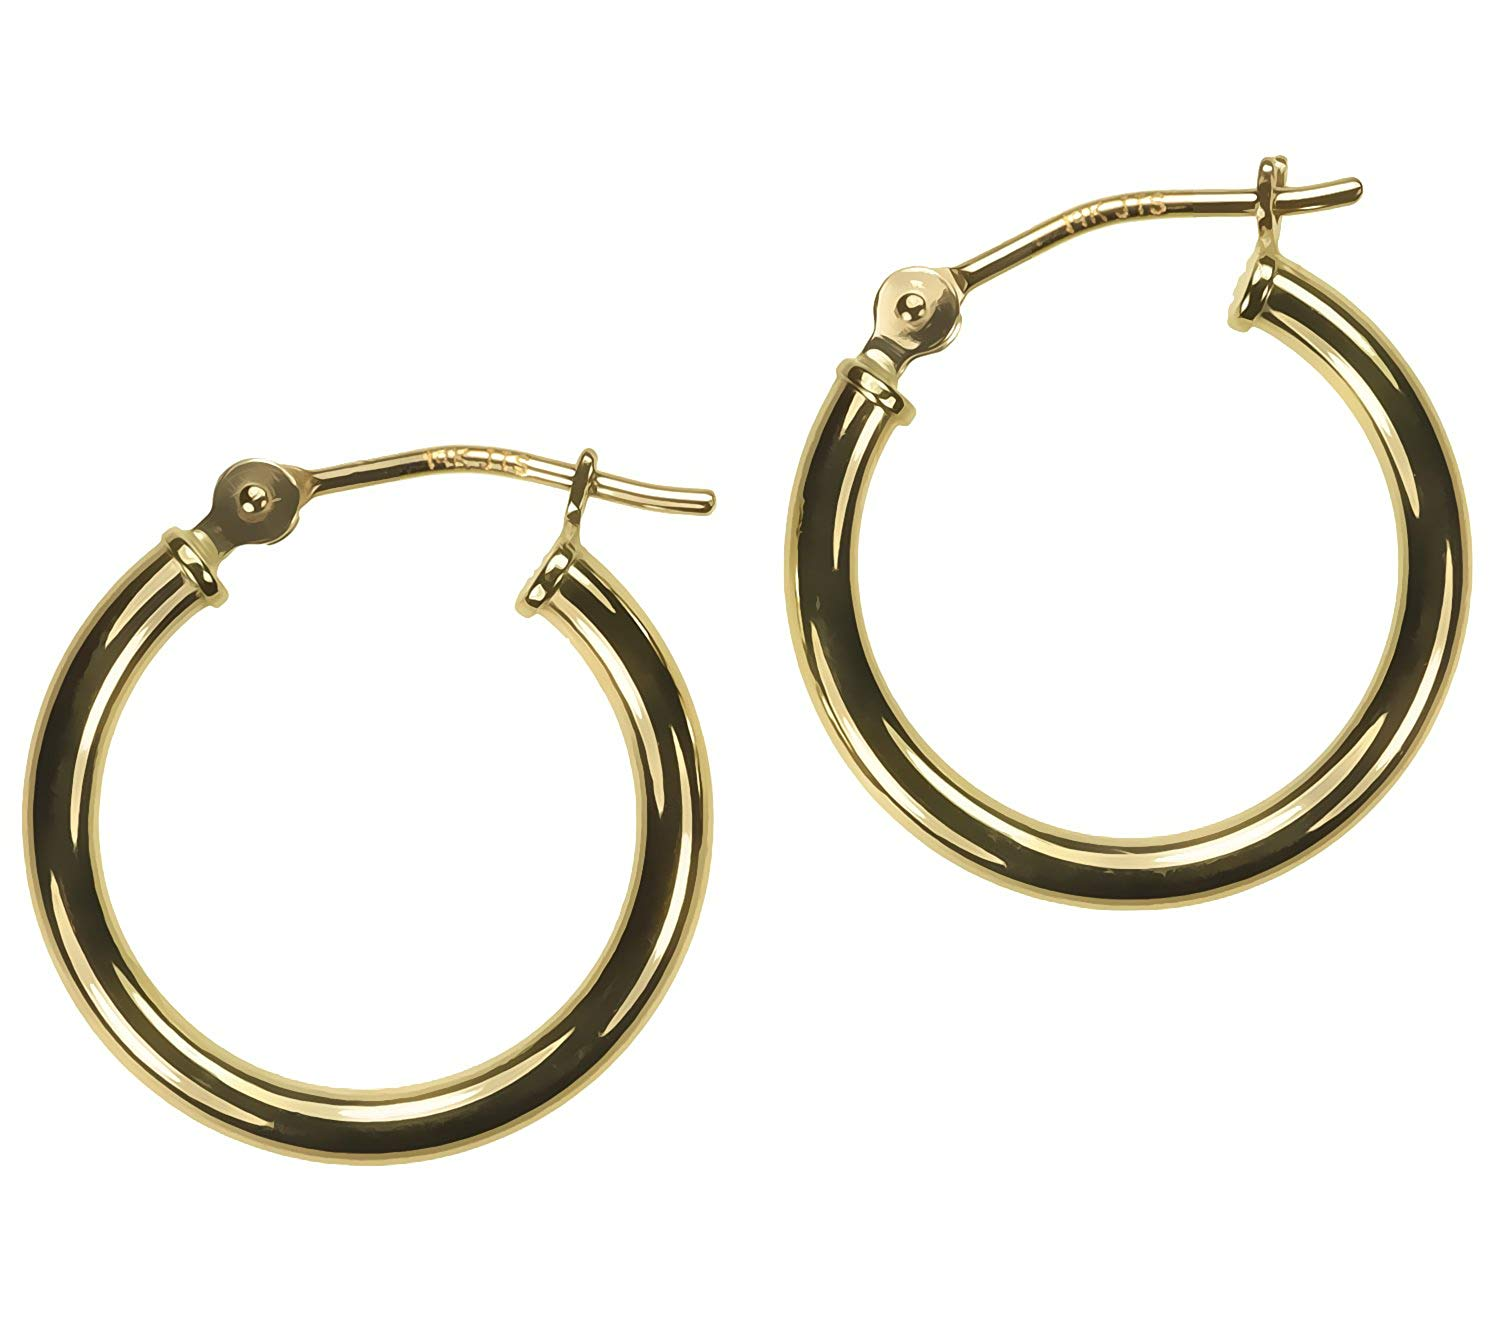 14K Gold 16 x 2mm Tube Hoop Earrings